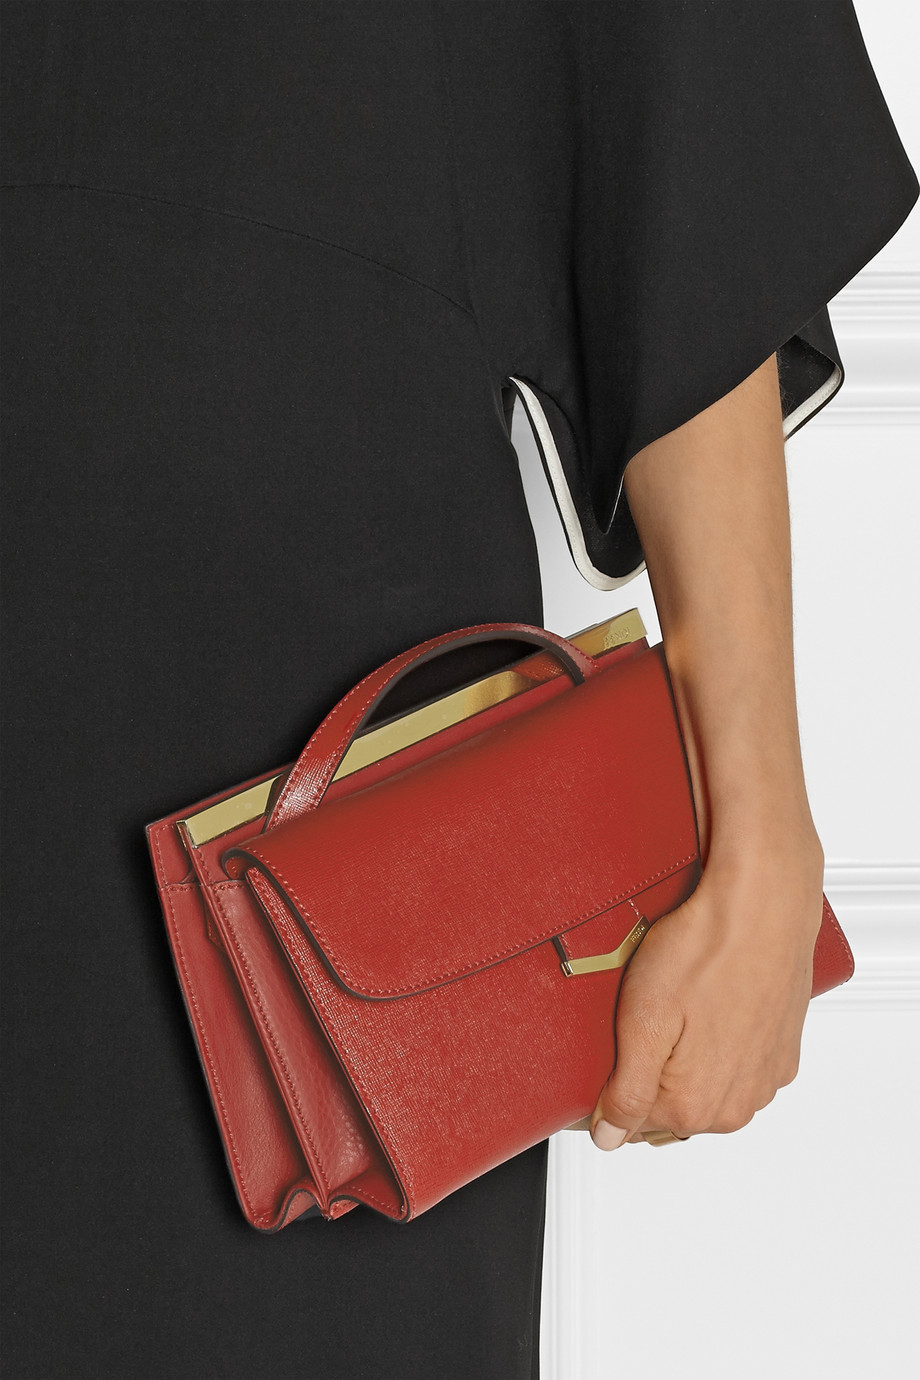 647d2081bd0 Fendi Demi Jours Small Textured-Leather Shoulder Bag in Red - Lyst